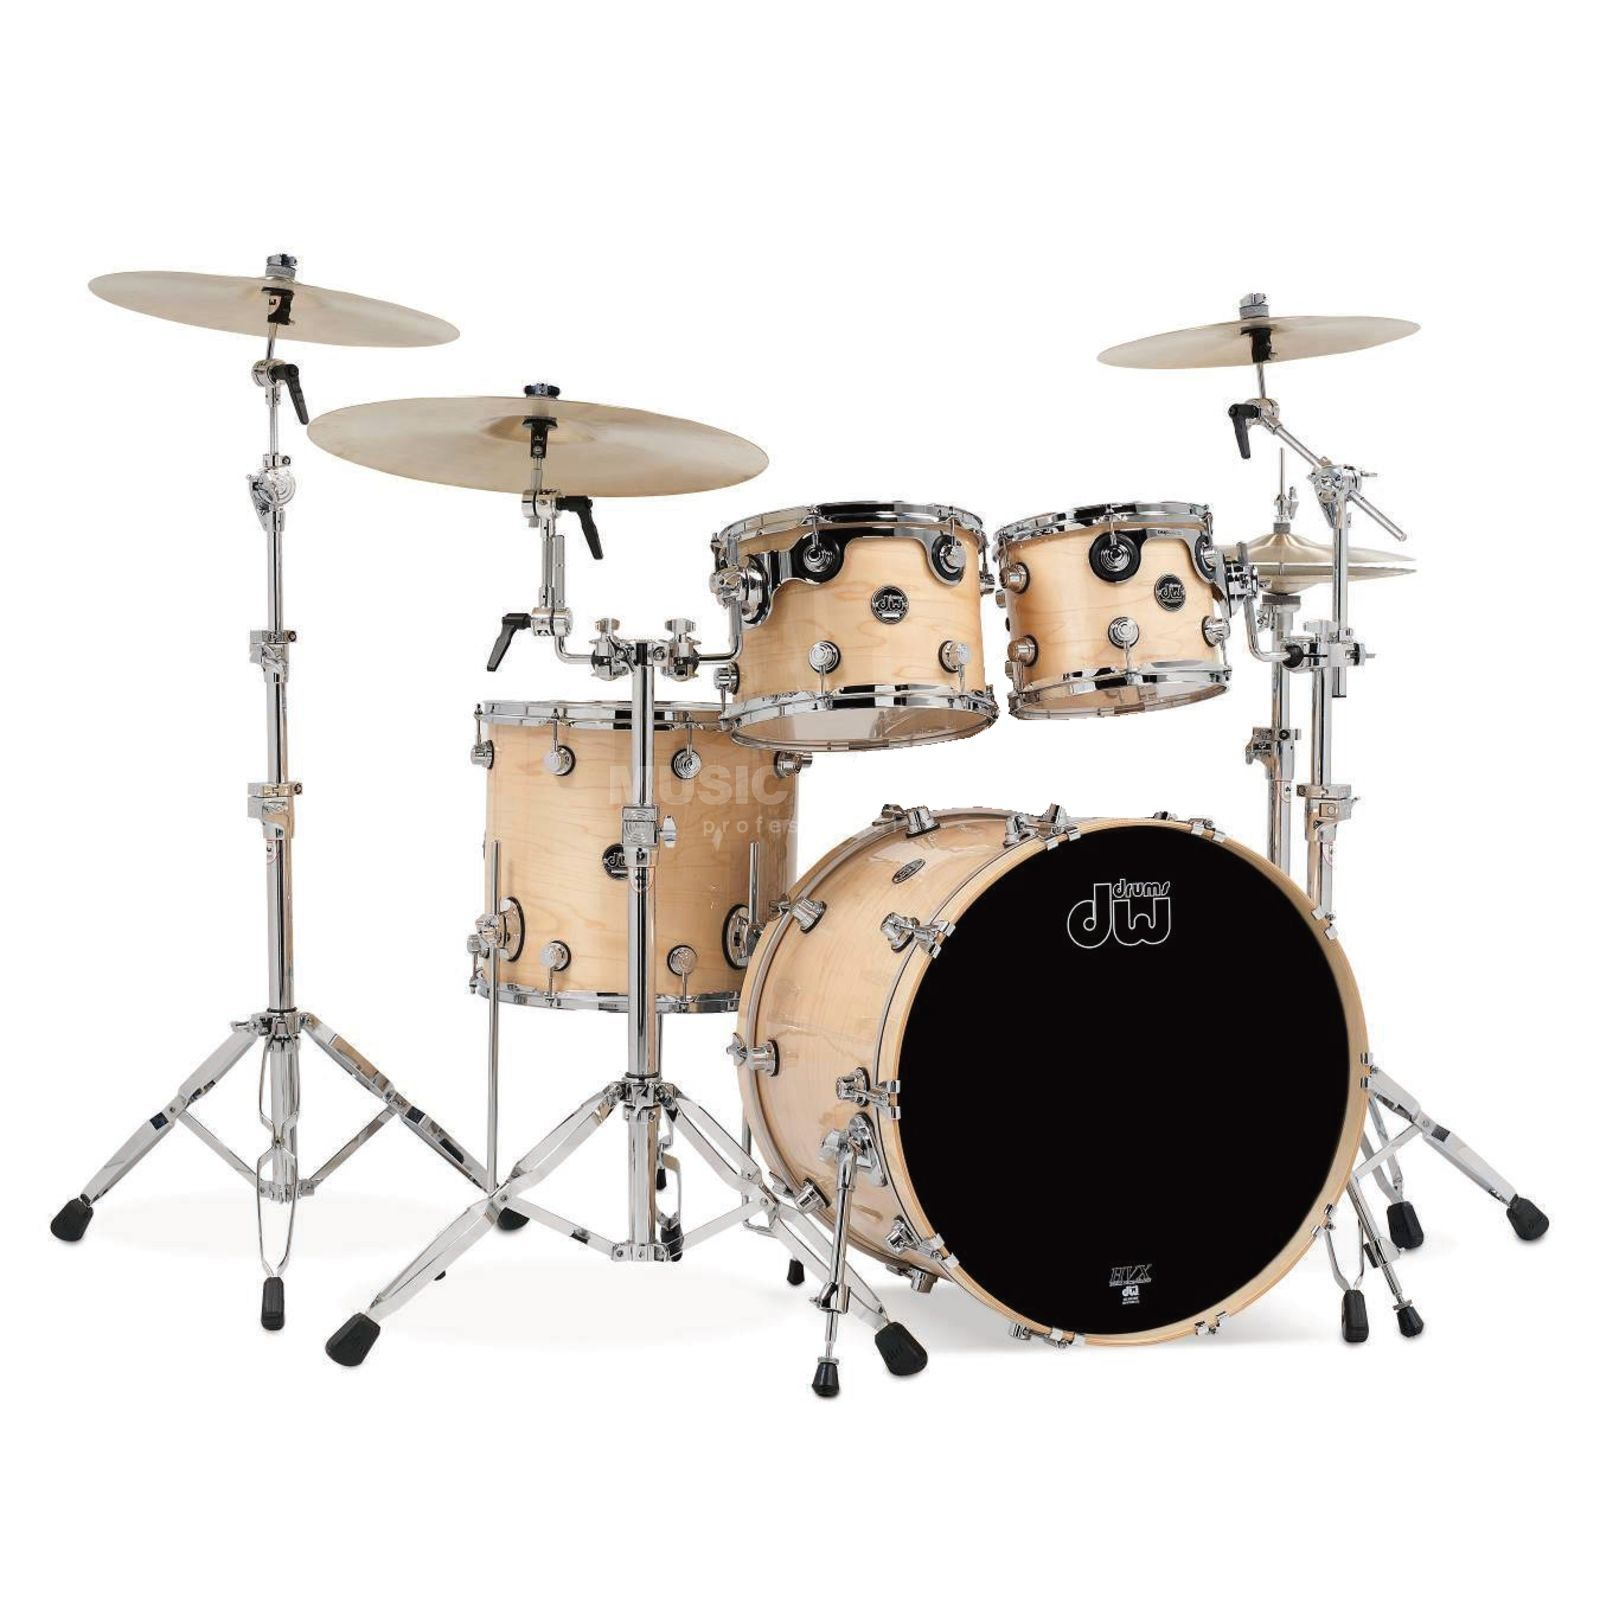 "Drum Workshop Performance ShellSet""Rock II"", Lacquer, Natural Lacquer Produktbillede"